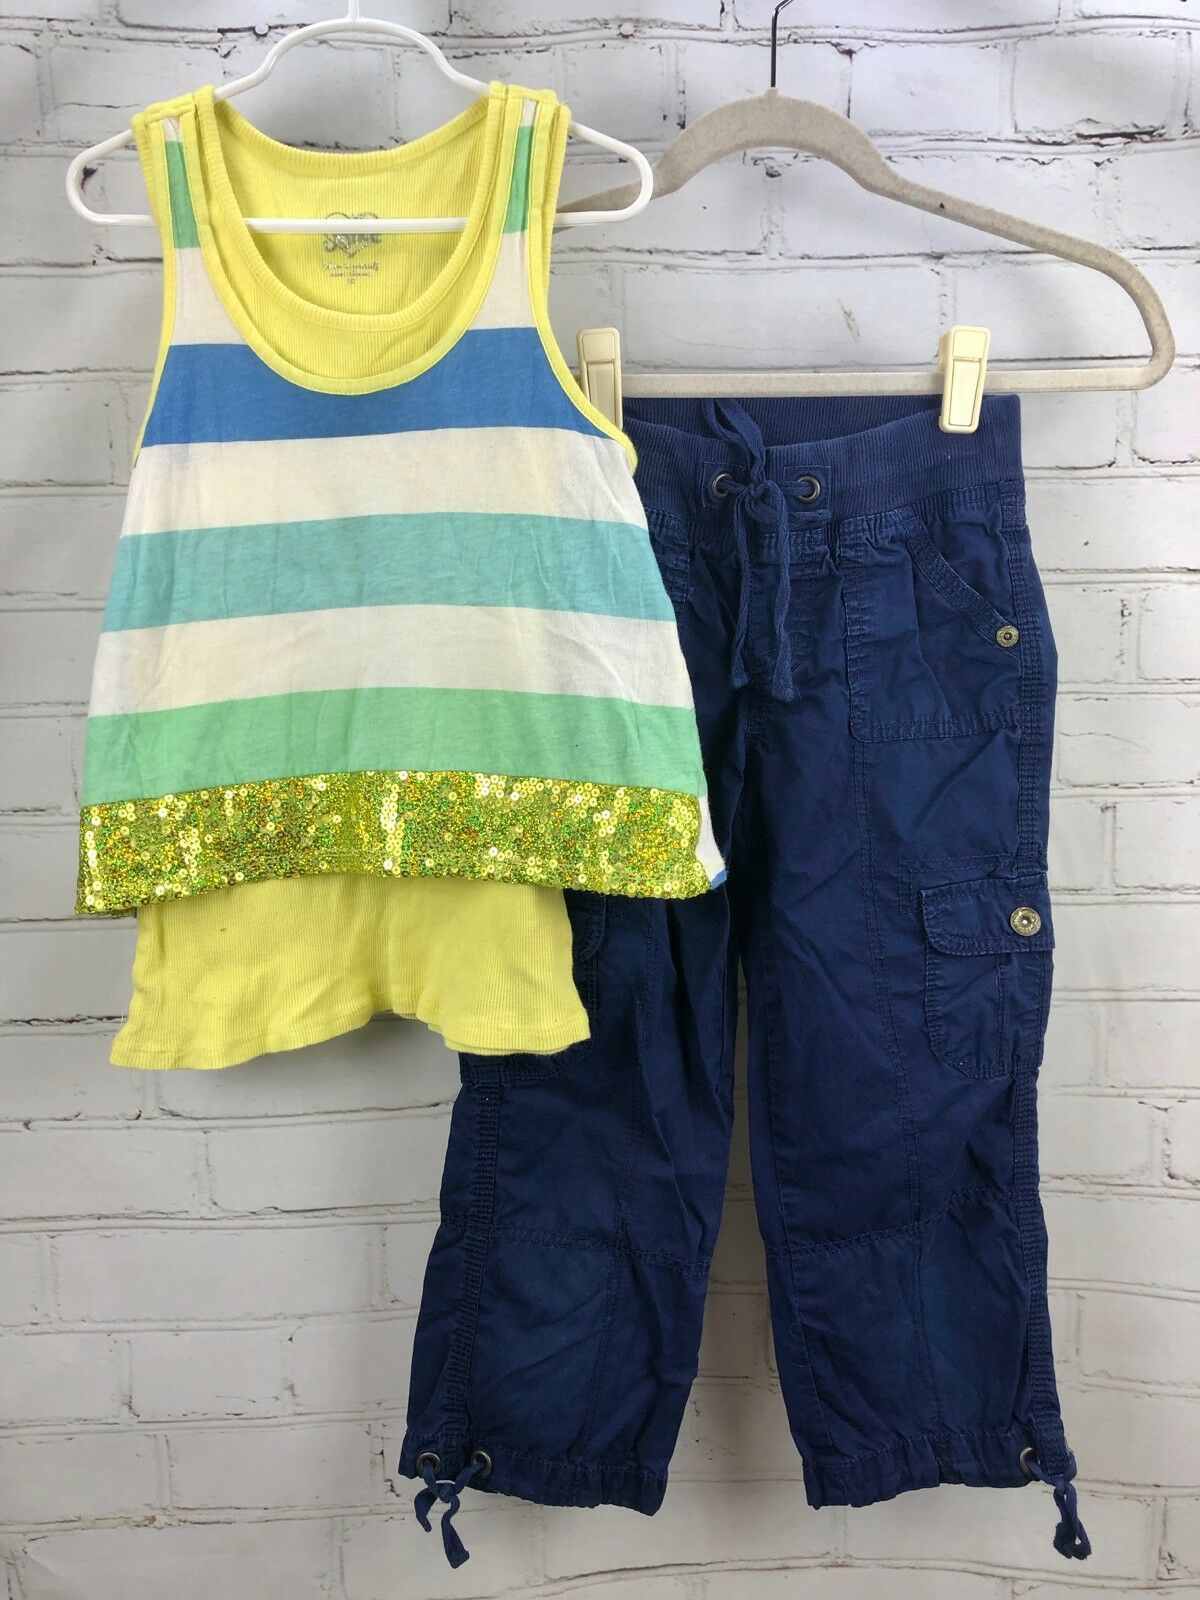 Primary image for Justice Outfit Set - Layered cotton Tank Top + Roll Up Capri Pull On Pants Sz 10